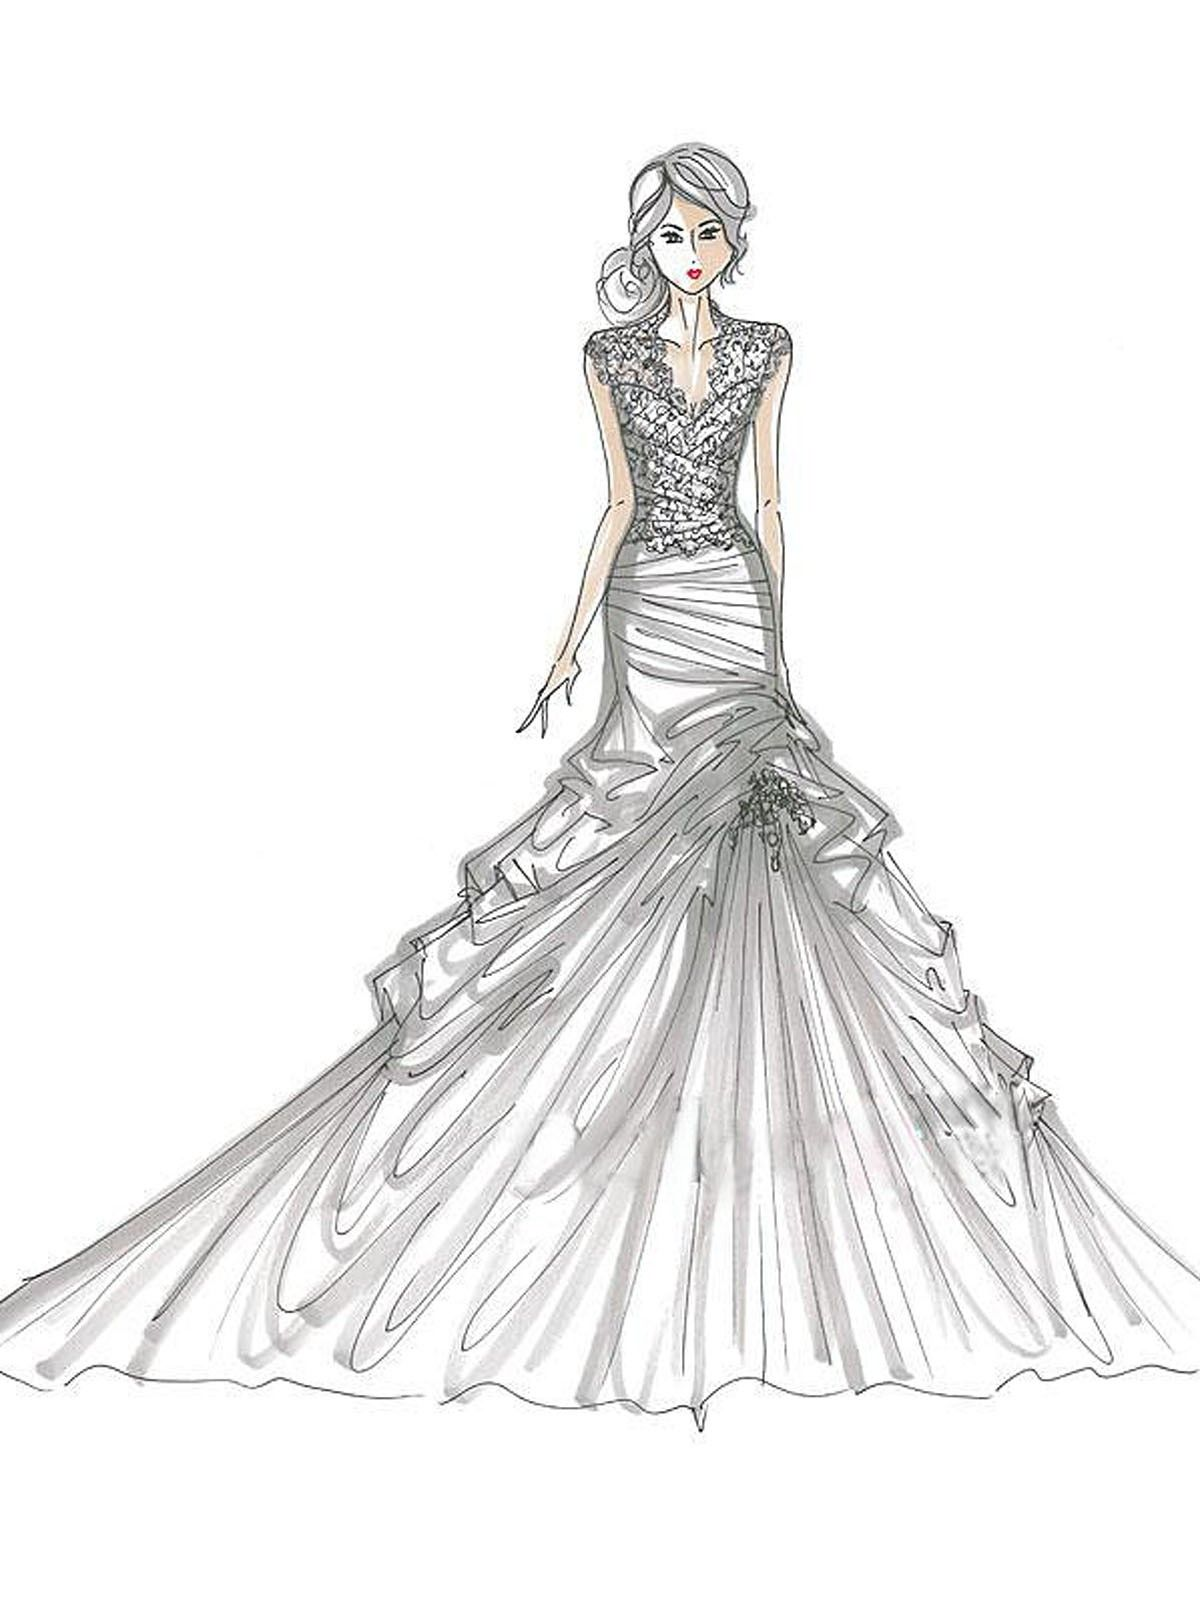 wedding dress coloring pages Of Wedding Dresses   Coloring Pages for Kids and for Adults  wedding dress coloring pages